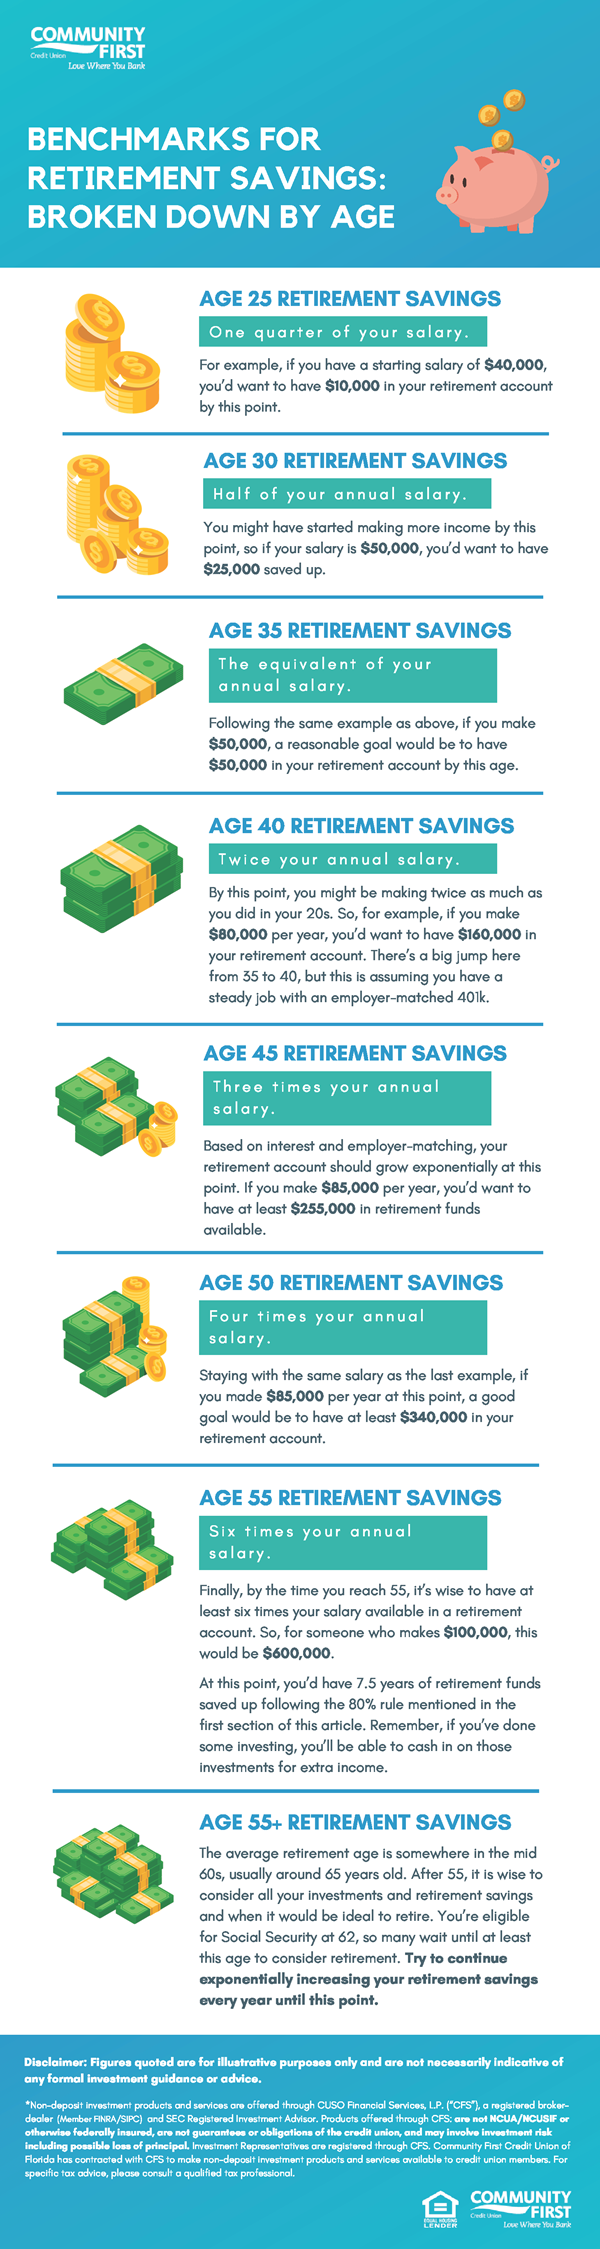 Benchmarks for Retirement Savings by Age